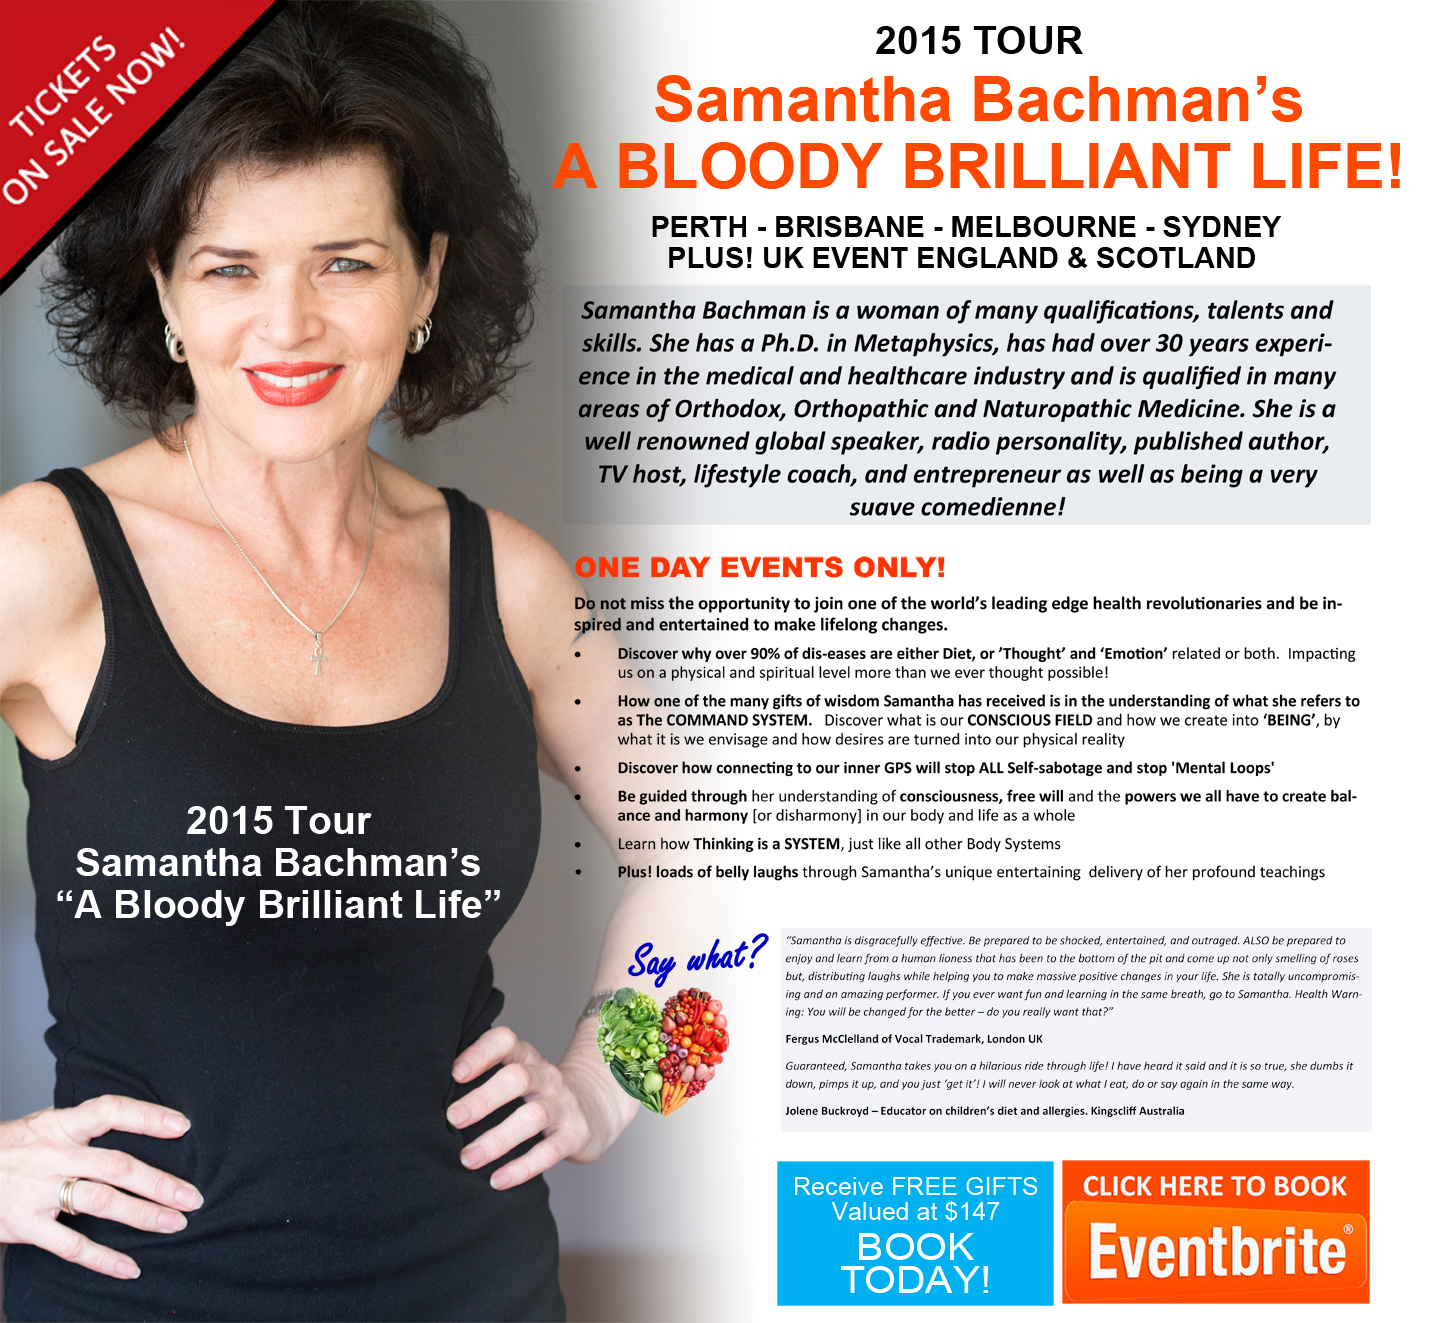 Samantha Bachman is a woman of many qualifications, talents and skills. She has a Ph.D. in Metaphysics, has had over 30 years experience in the medical and healthcare industry and is qualified in many areas of Orthodox, Orthopathic, Naturopathic & Bio-Energetic Medicine. She is a well renowned global speaker, radio personality, published author, TV host, lifestyle coach, and entrepreneur as well a being a very suave comedienne.